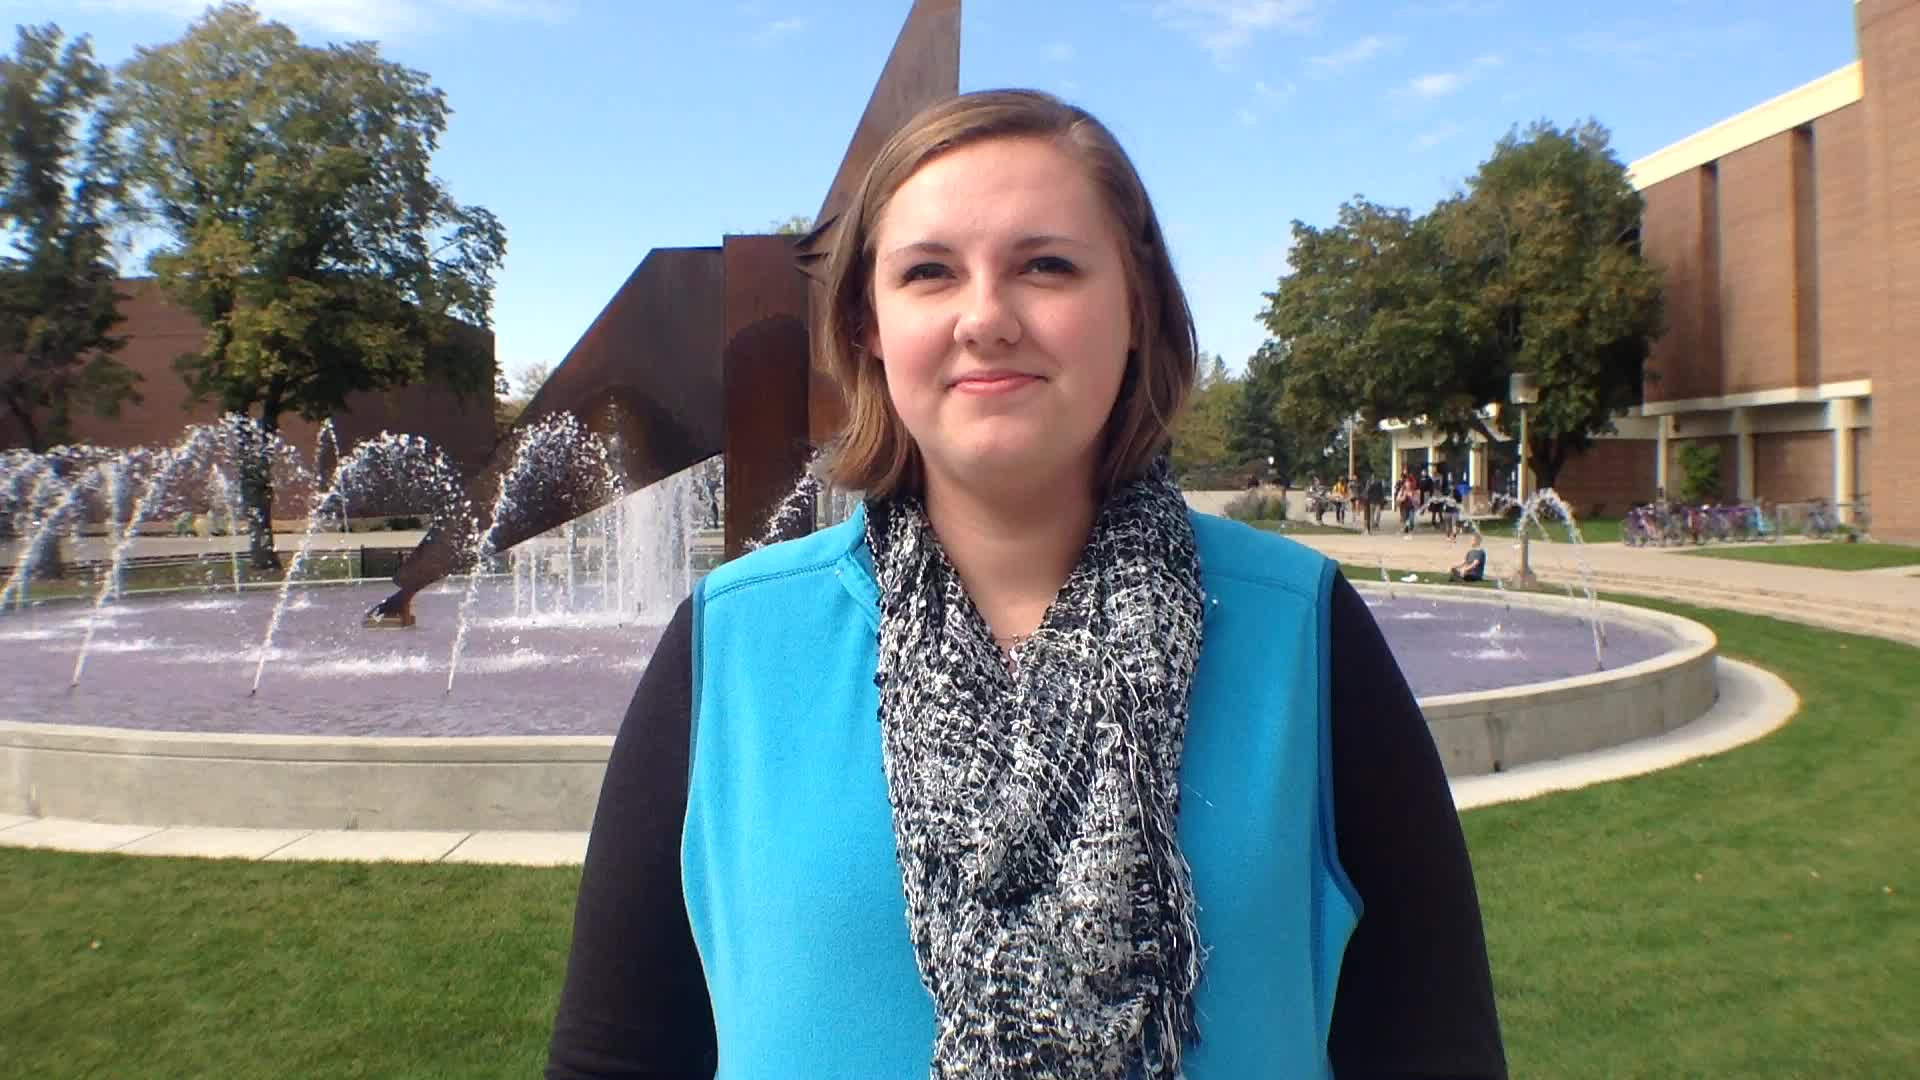 Katie Haygood, Mason City, IA - Homecoming 2015 at Minnesota State University, Mankato